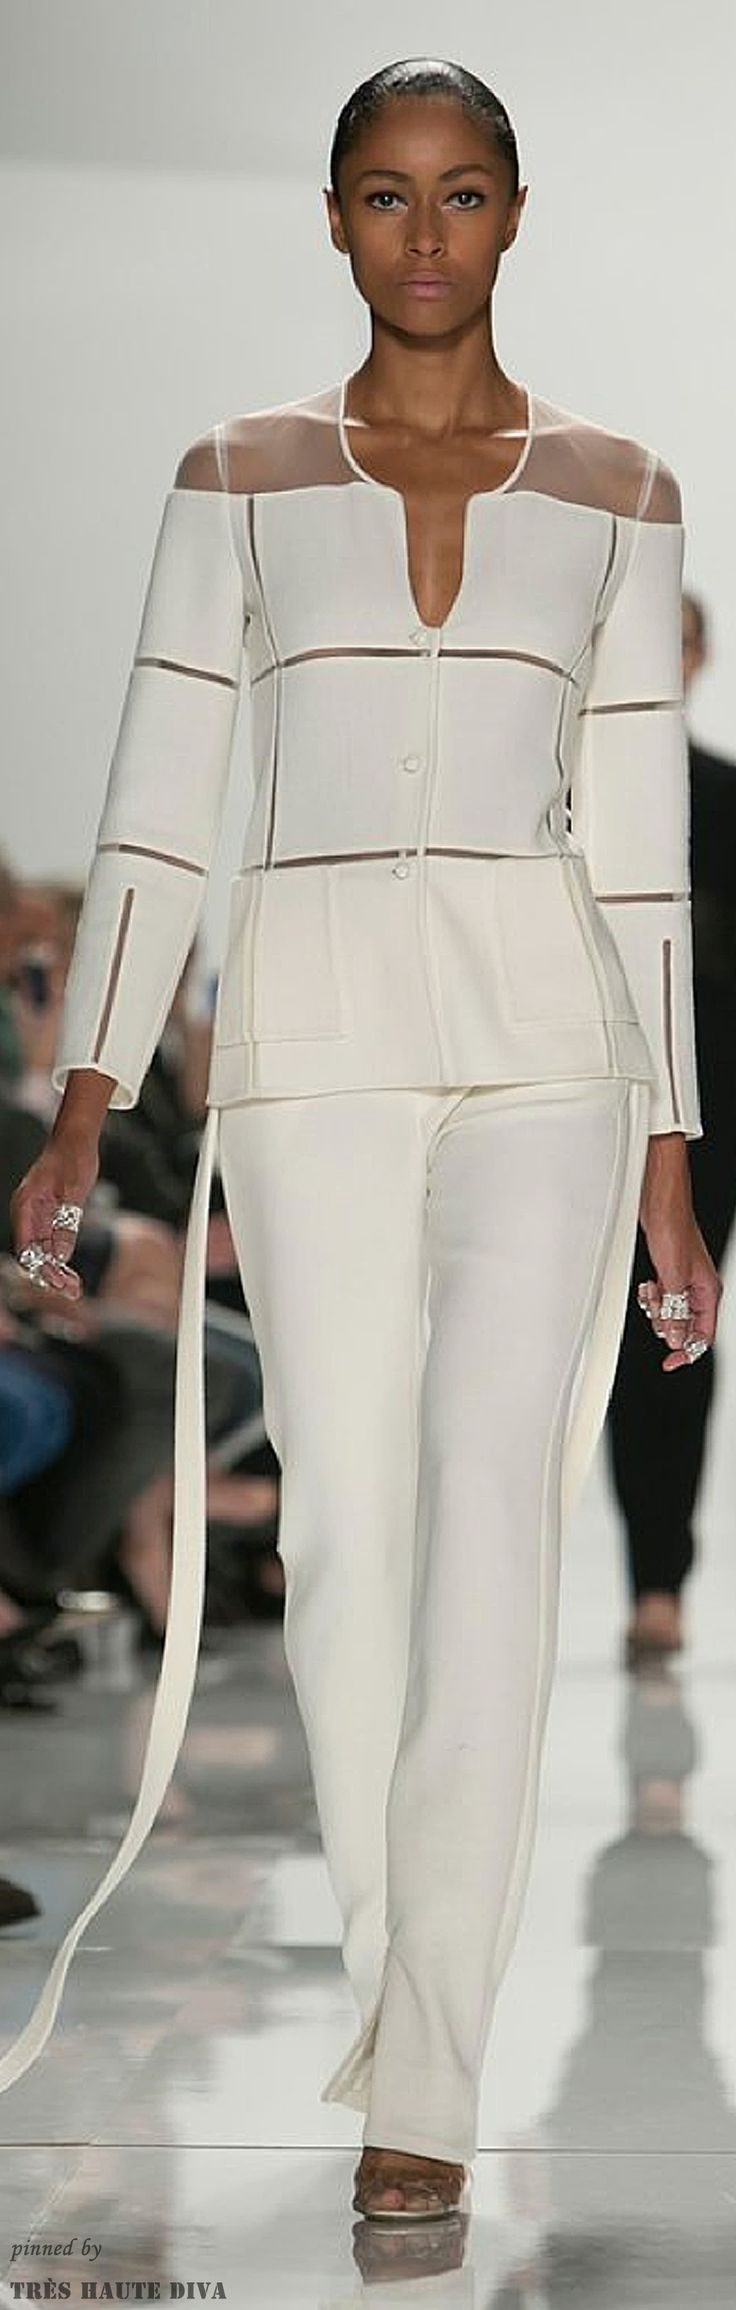 Ivory, Cream, or Pearls ✦ Ralph Rucci Spring 2014 RTW ✦ from my board…